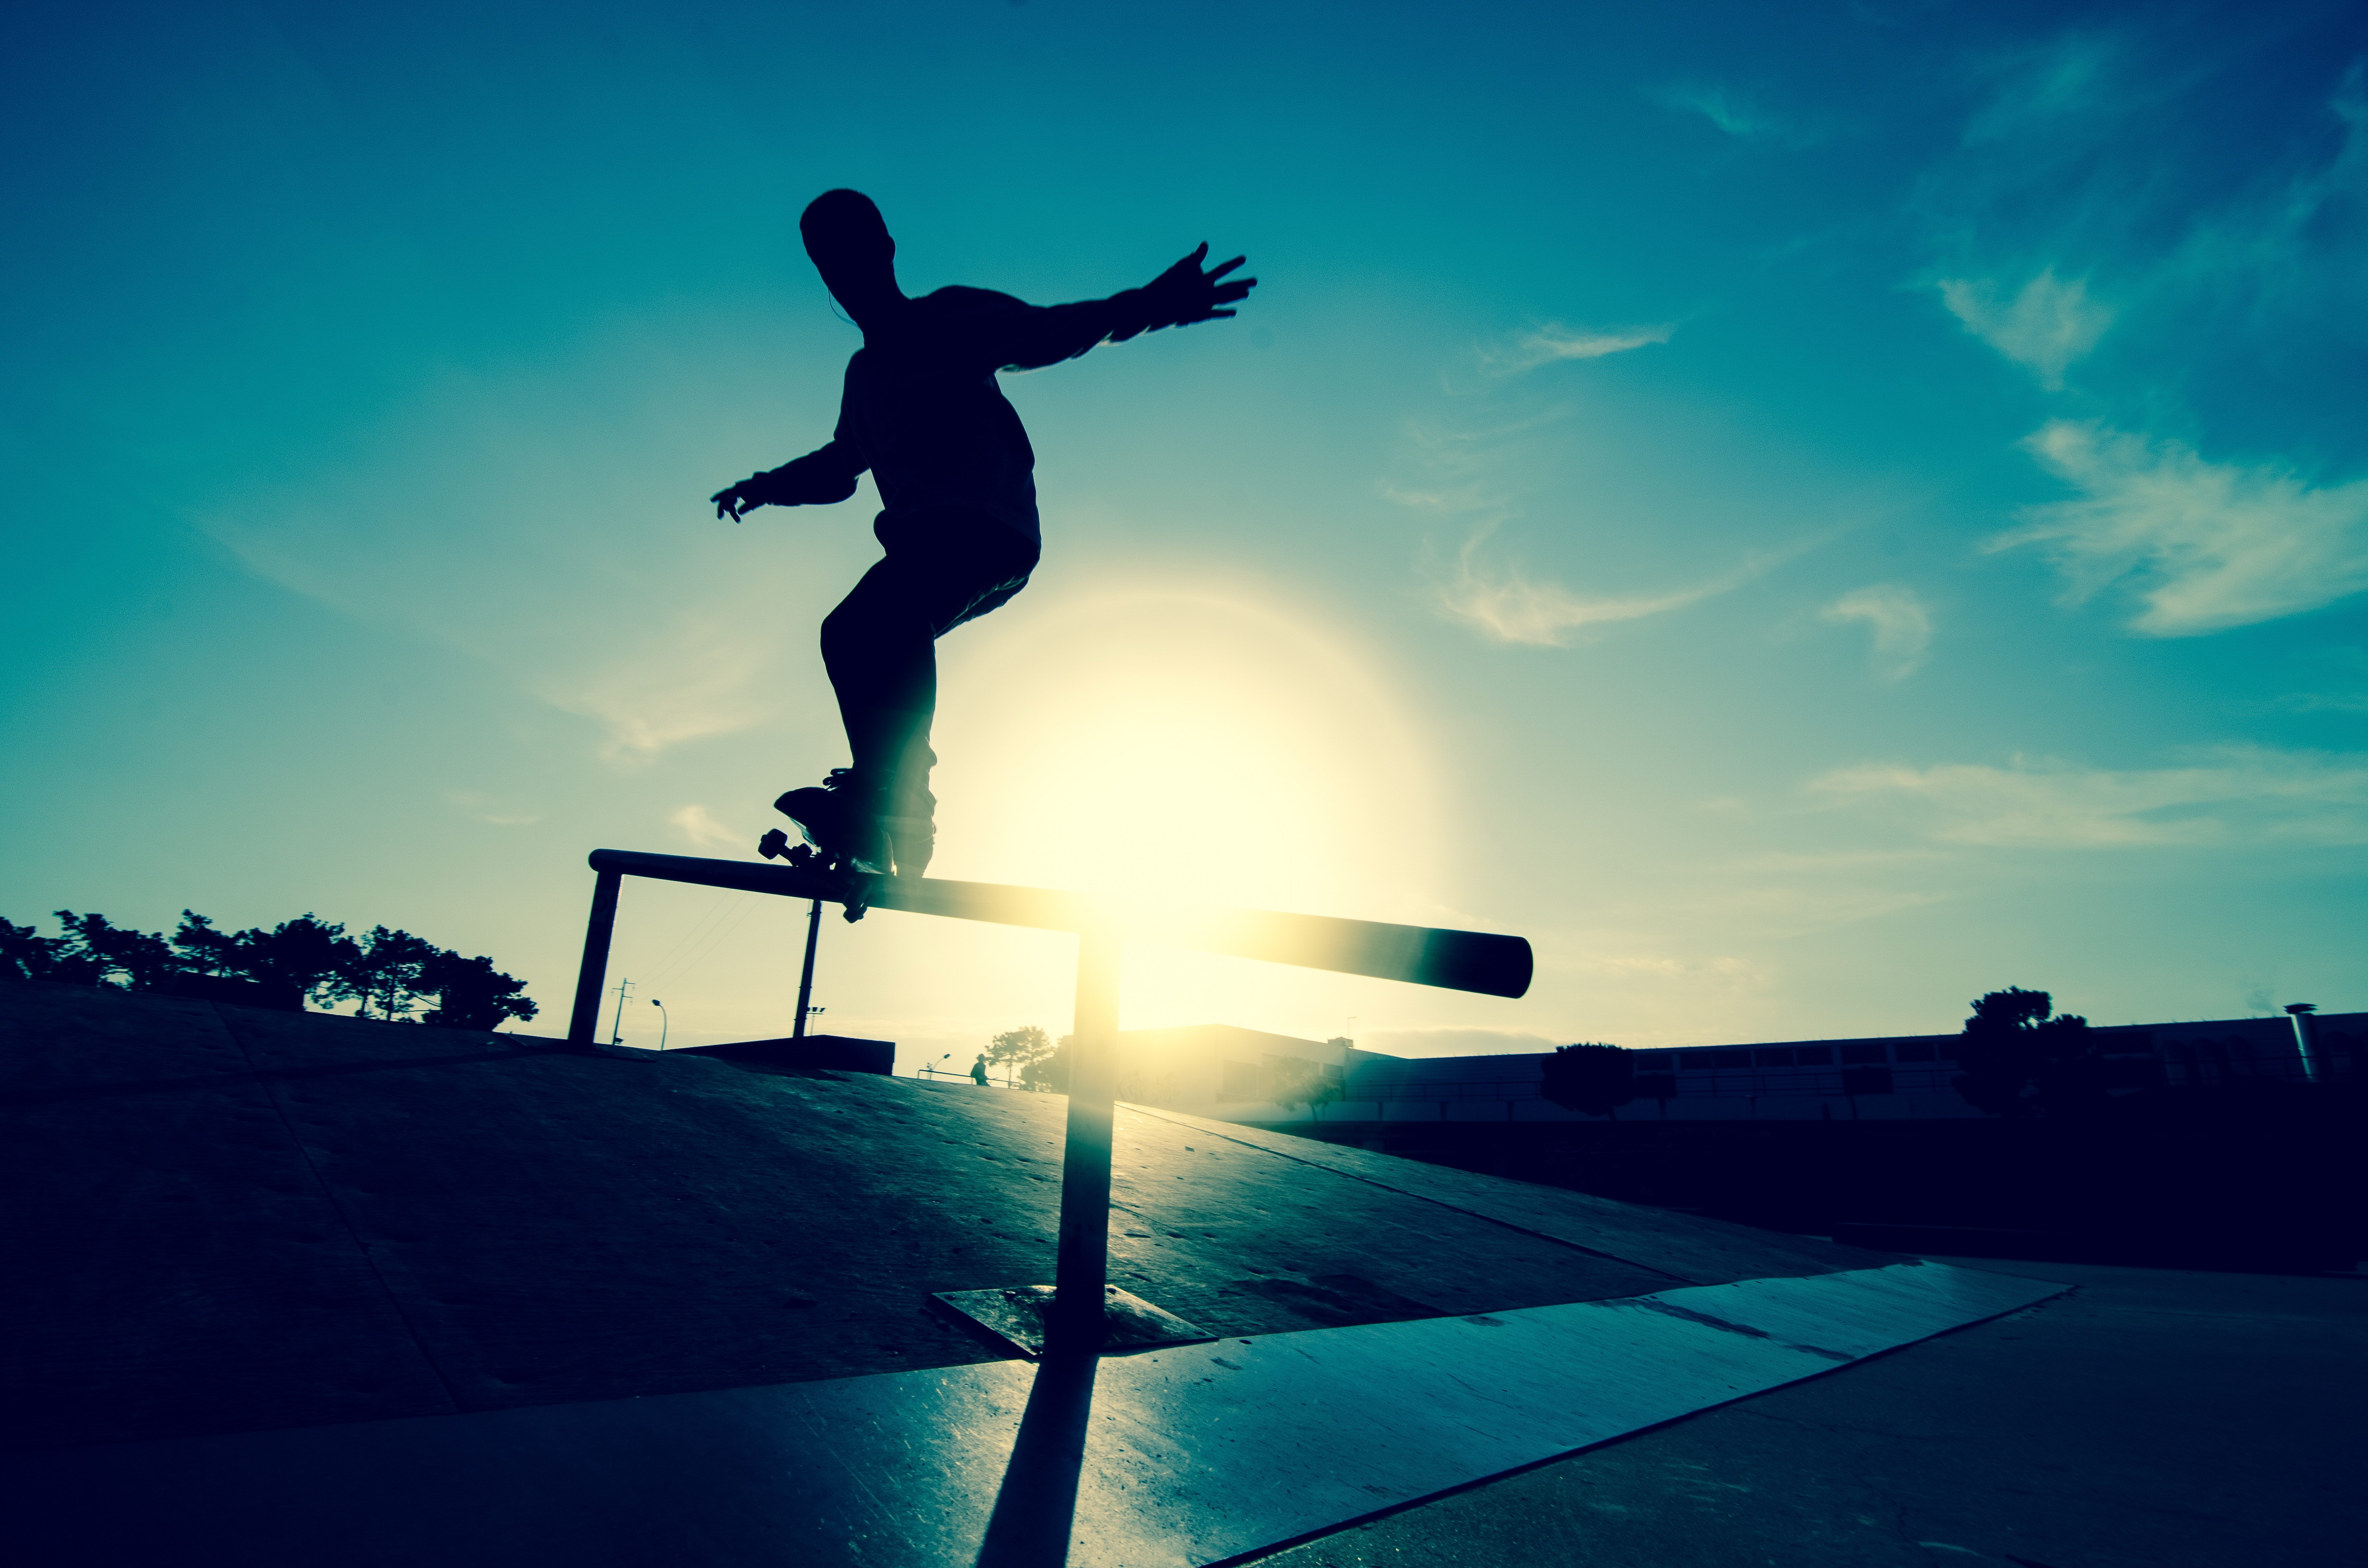 73981 download wallpaper Sports, Skate, Board, Athlete, Sportsman, Railings, Handrail, Traffic, Movement, Silhouette, Rink screensavers and pictures for free